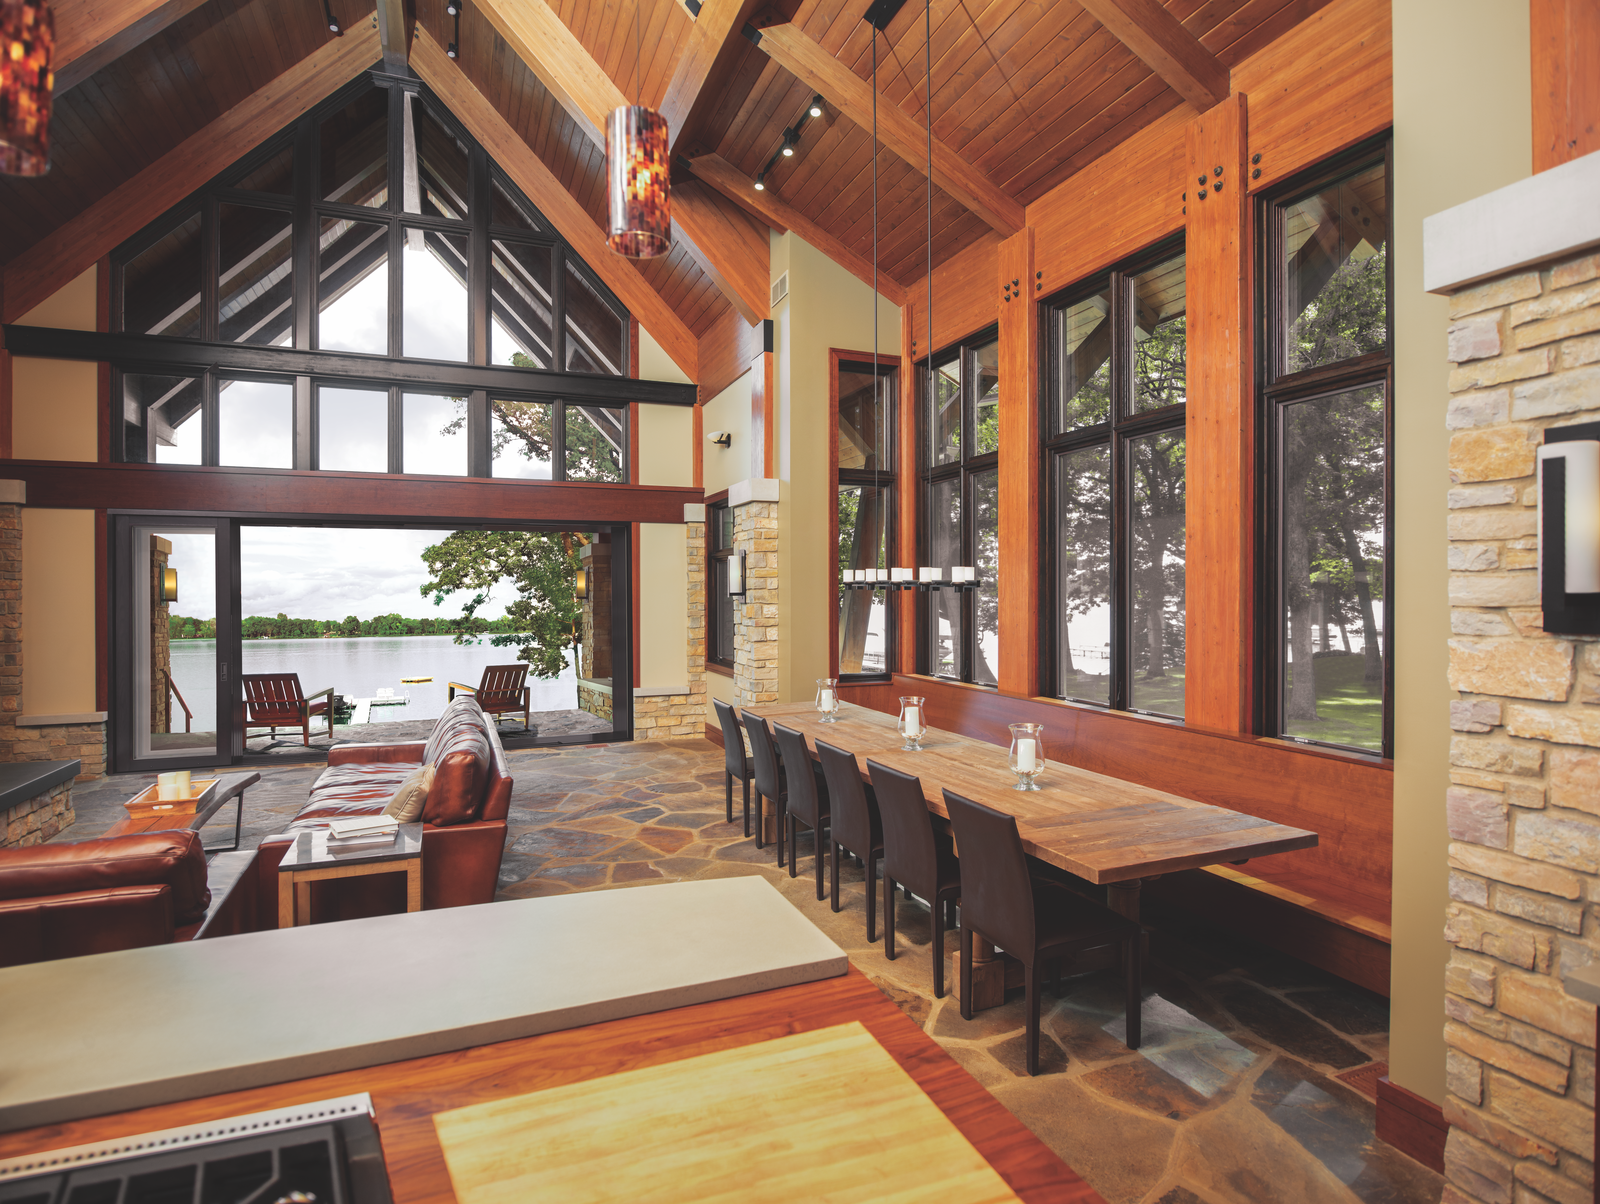 This home merges an open living space with a serene porch overlooking the water with a Marvin Ultimate Multi-Slide Door.